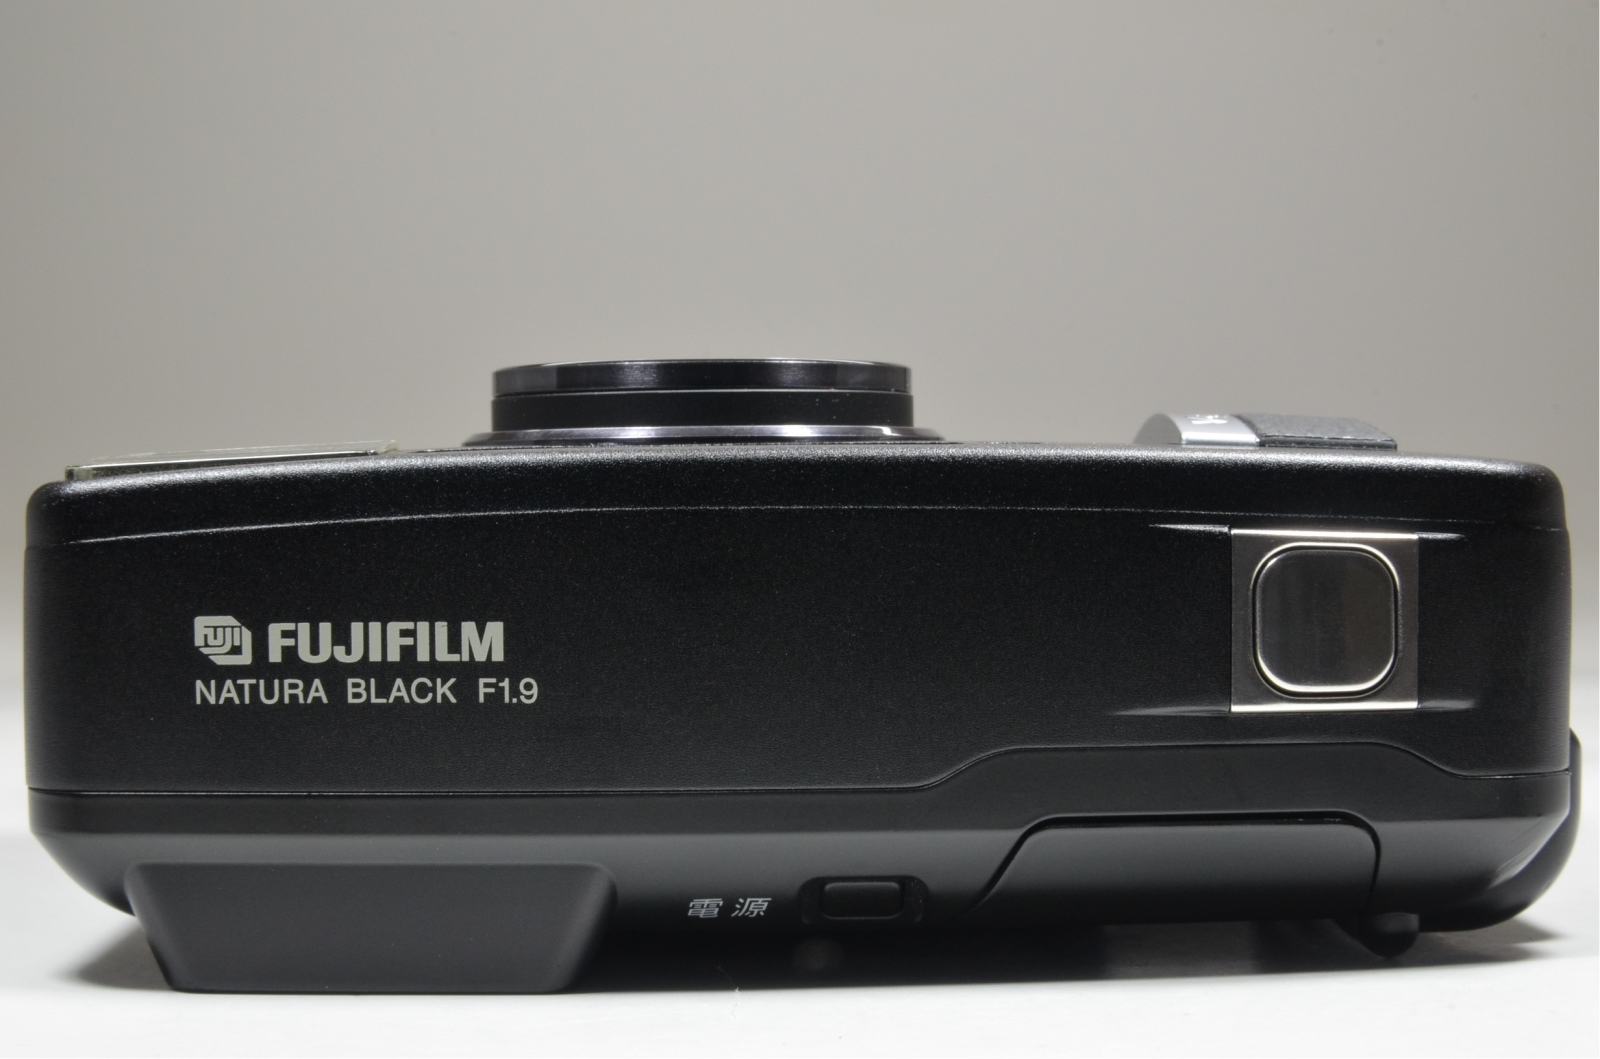 fujifilm nature black 24mm f1.9 35mmm film camera from japan